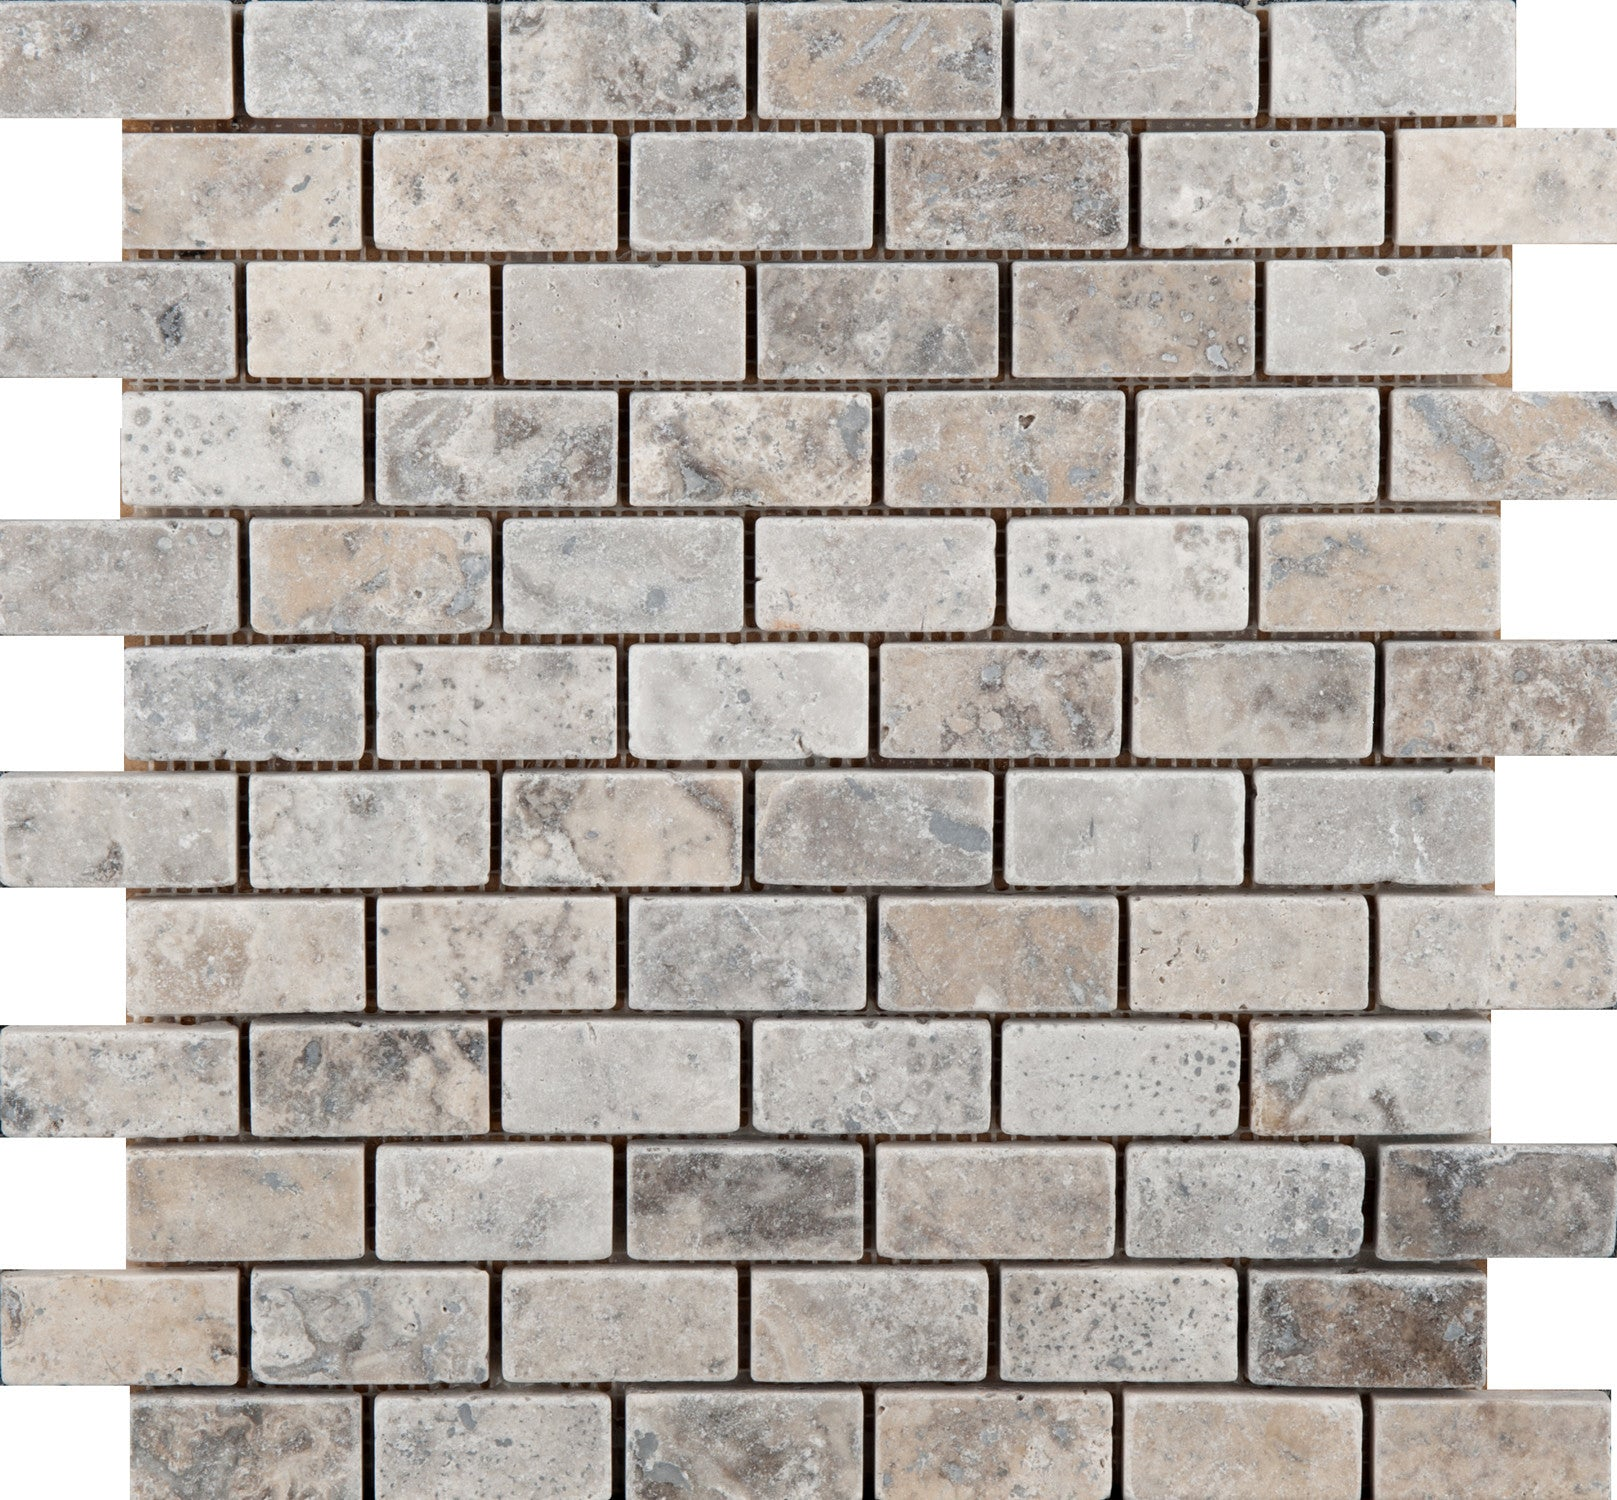 TRAV ANCIENT TUMBLED™ - Antique & Tumbled Stone Tile by Emser Tile ...